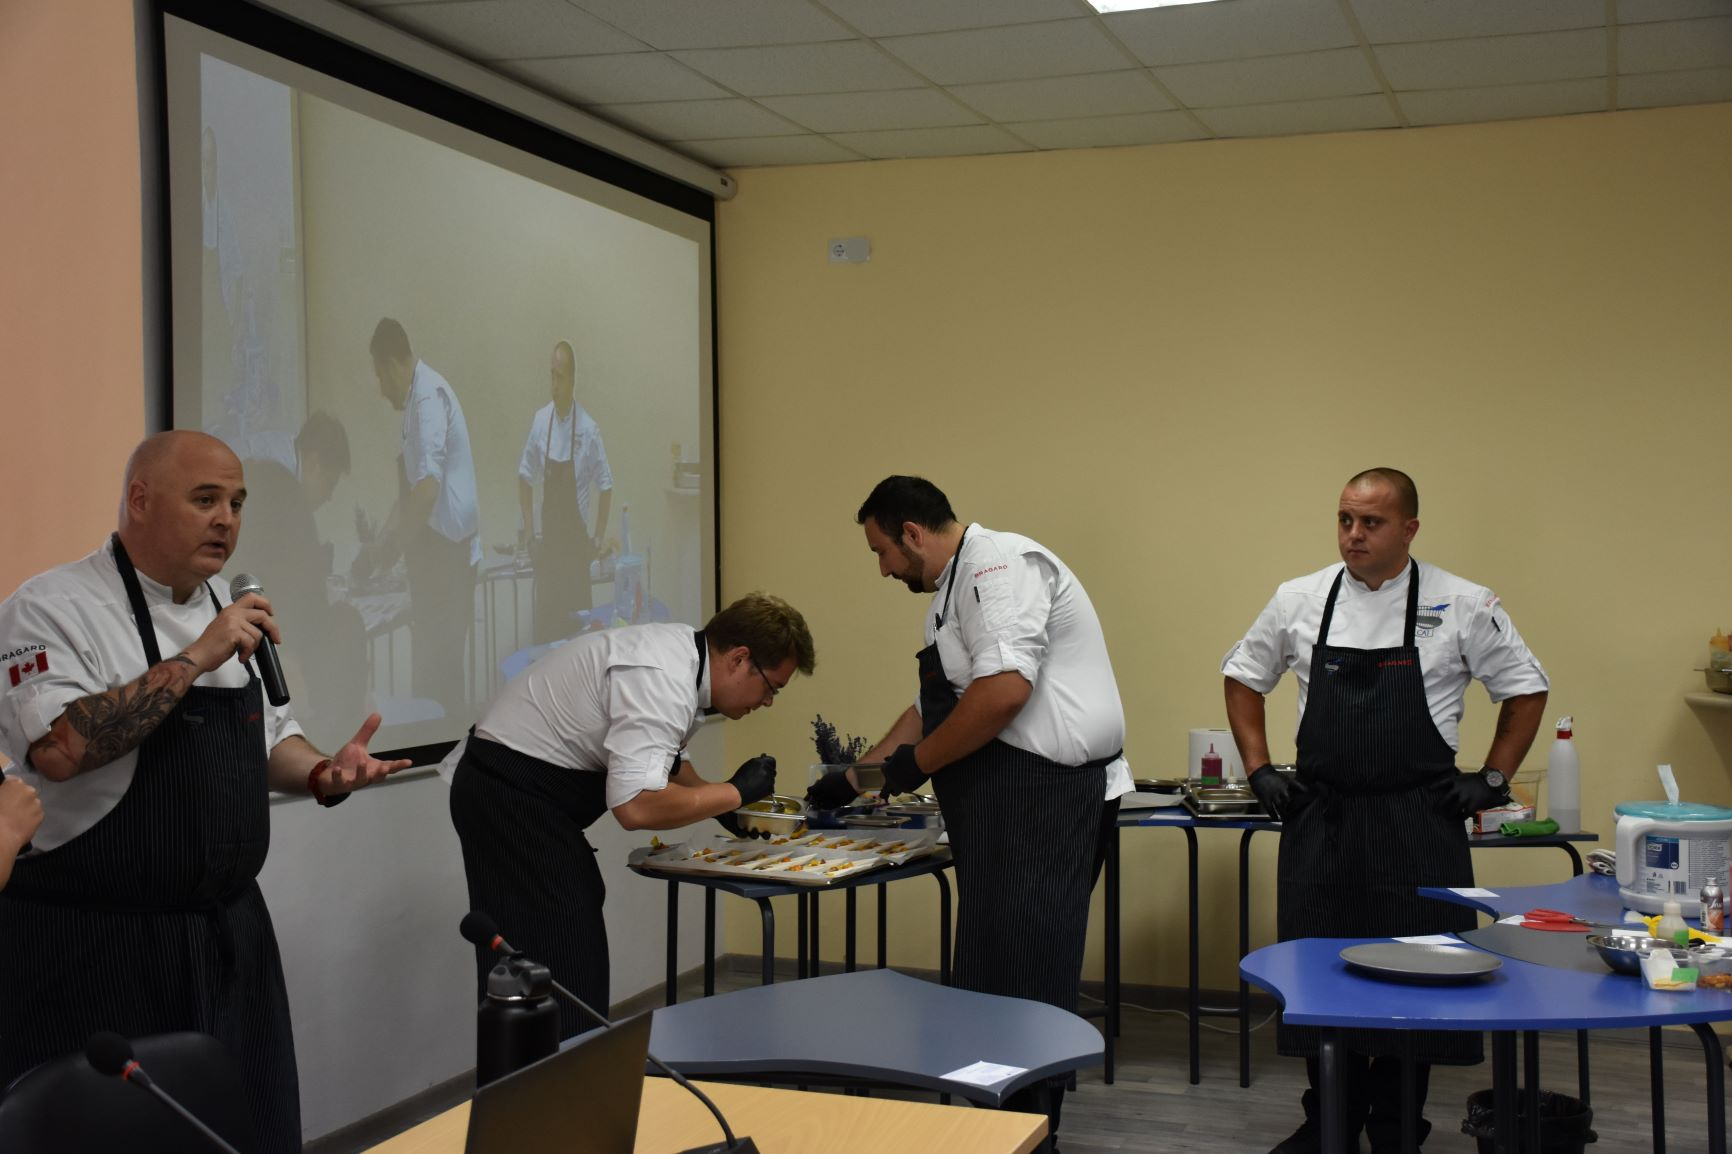 Culinary Arts demonstration by CAI chefs